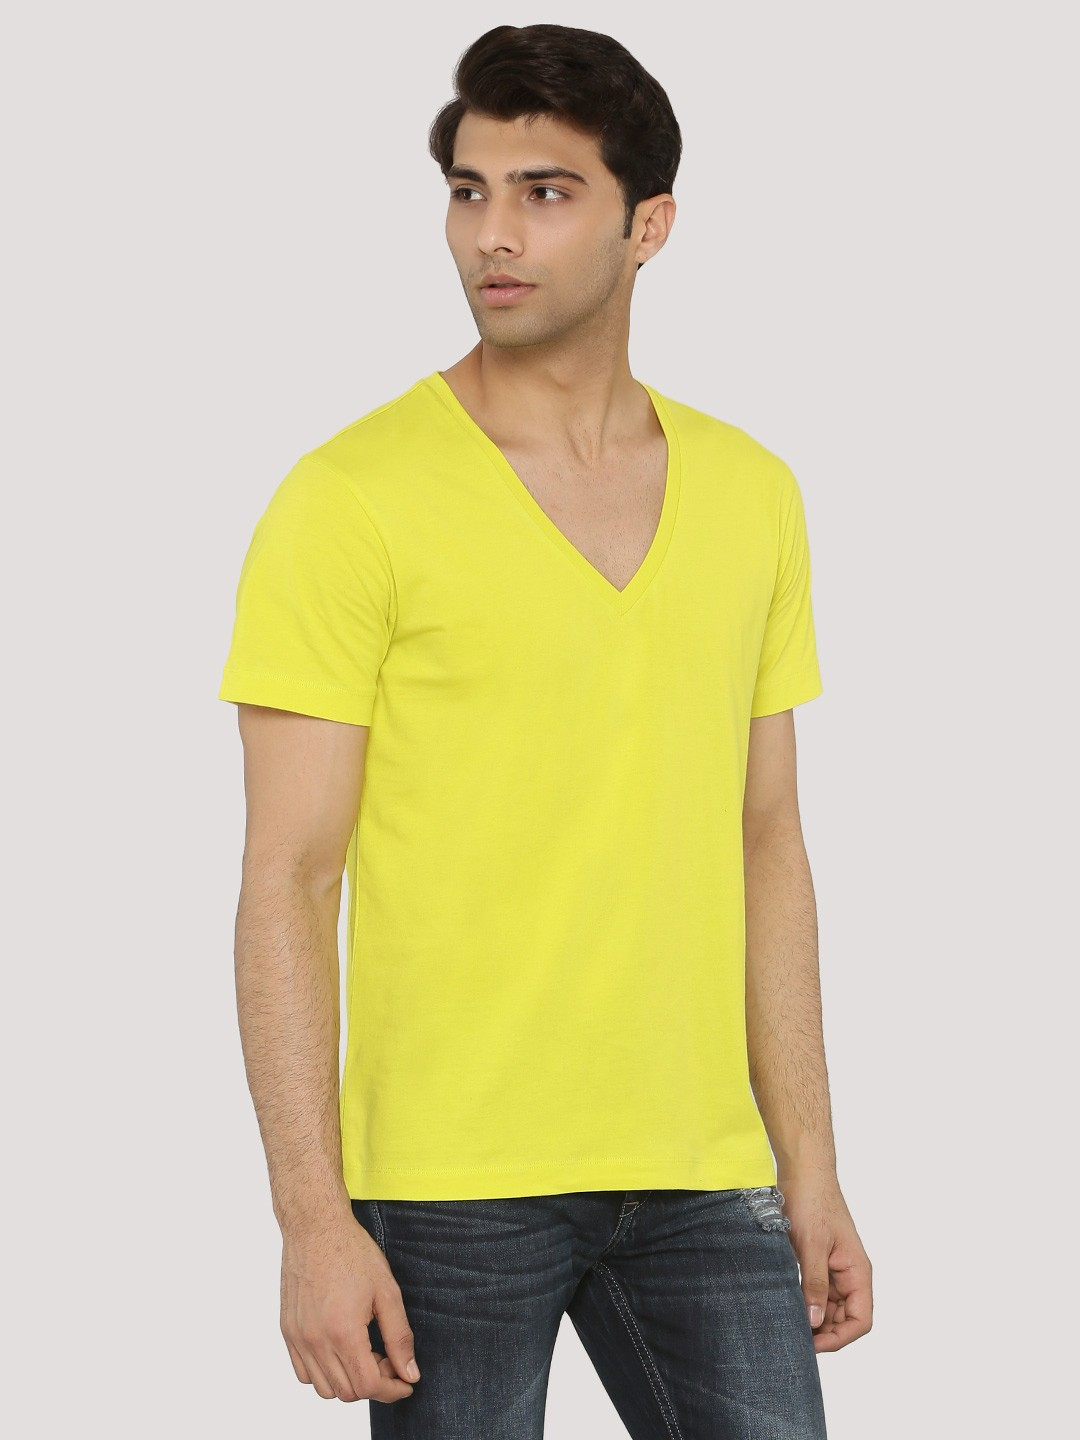 Shop V-Neck Mens T-Shirts online at low prices in India on distrib-wq9rfuqq.tk - your fastest online shopping site for mens t-shirts. Wide range of new and latest mens t-shirts available online. Wide range of new and latest mens t-shirts available online.